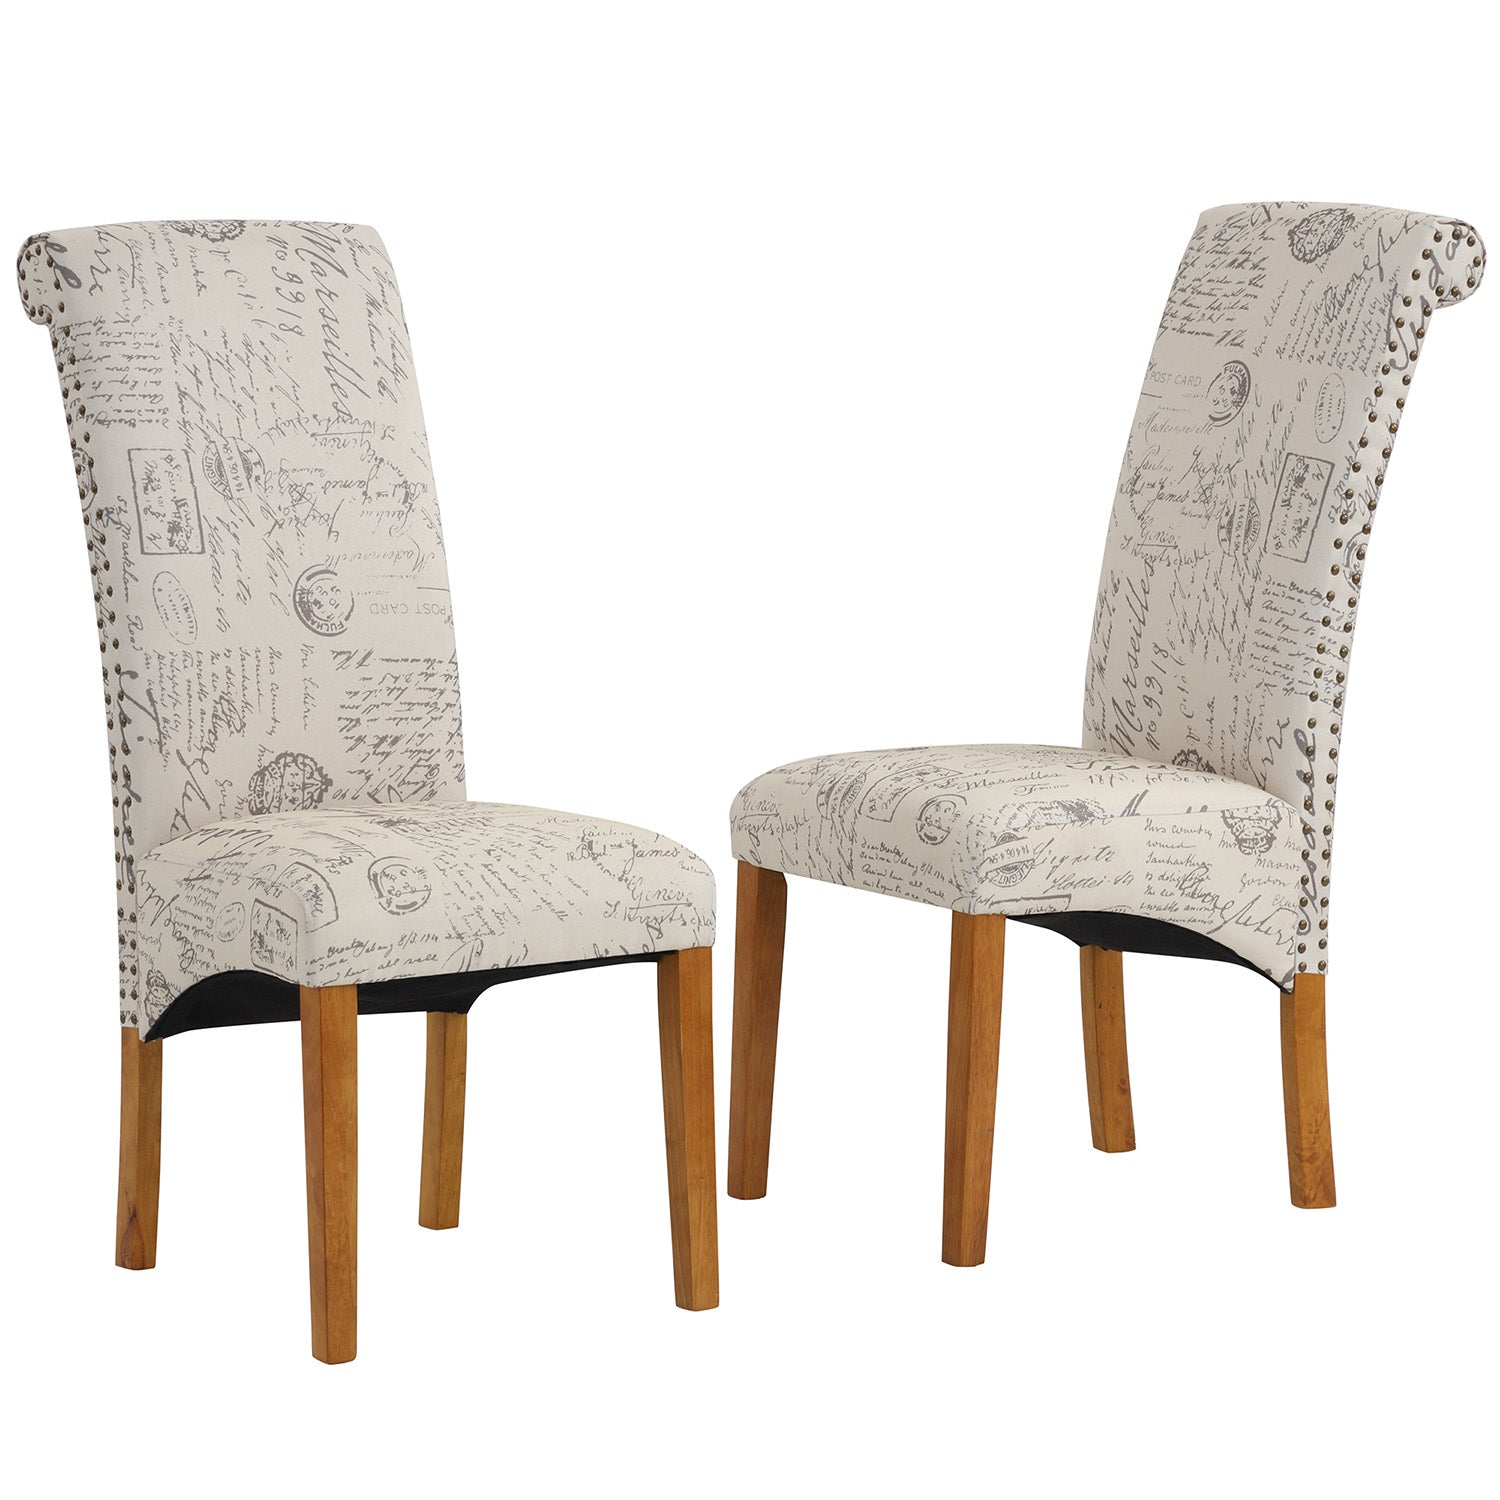 Gray Dining Chair Set Fabric Padded Side Chair with Solid Wood Legs Nailed Trim Living Room BH486200